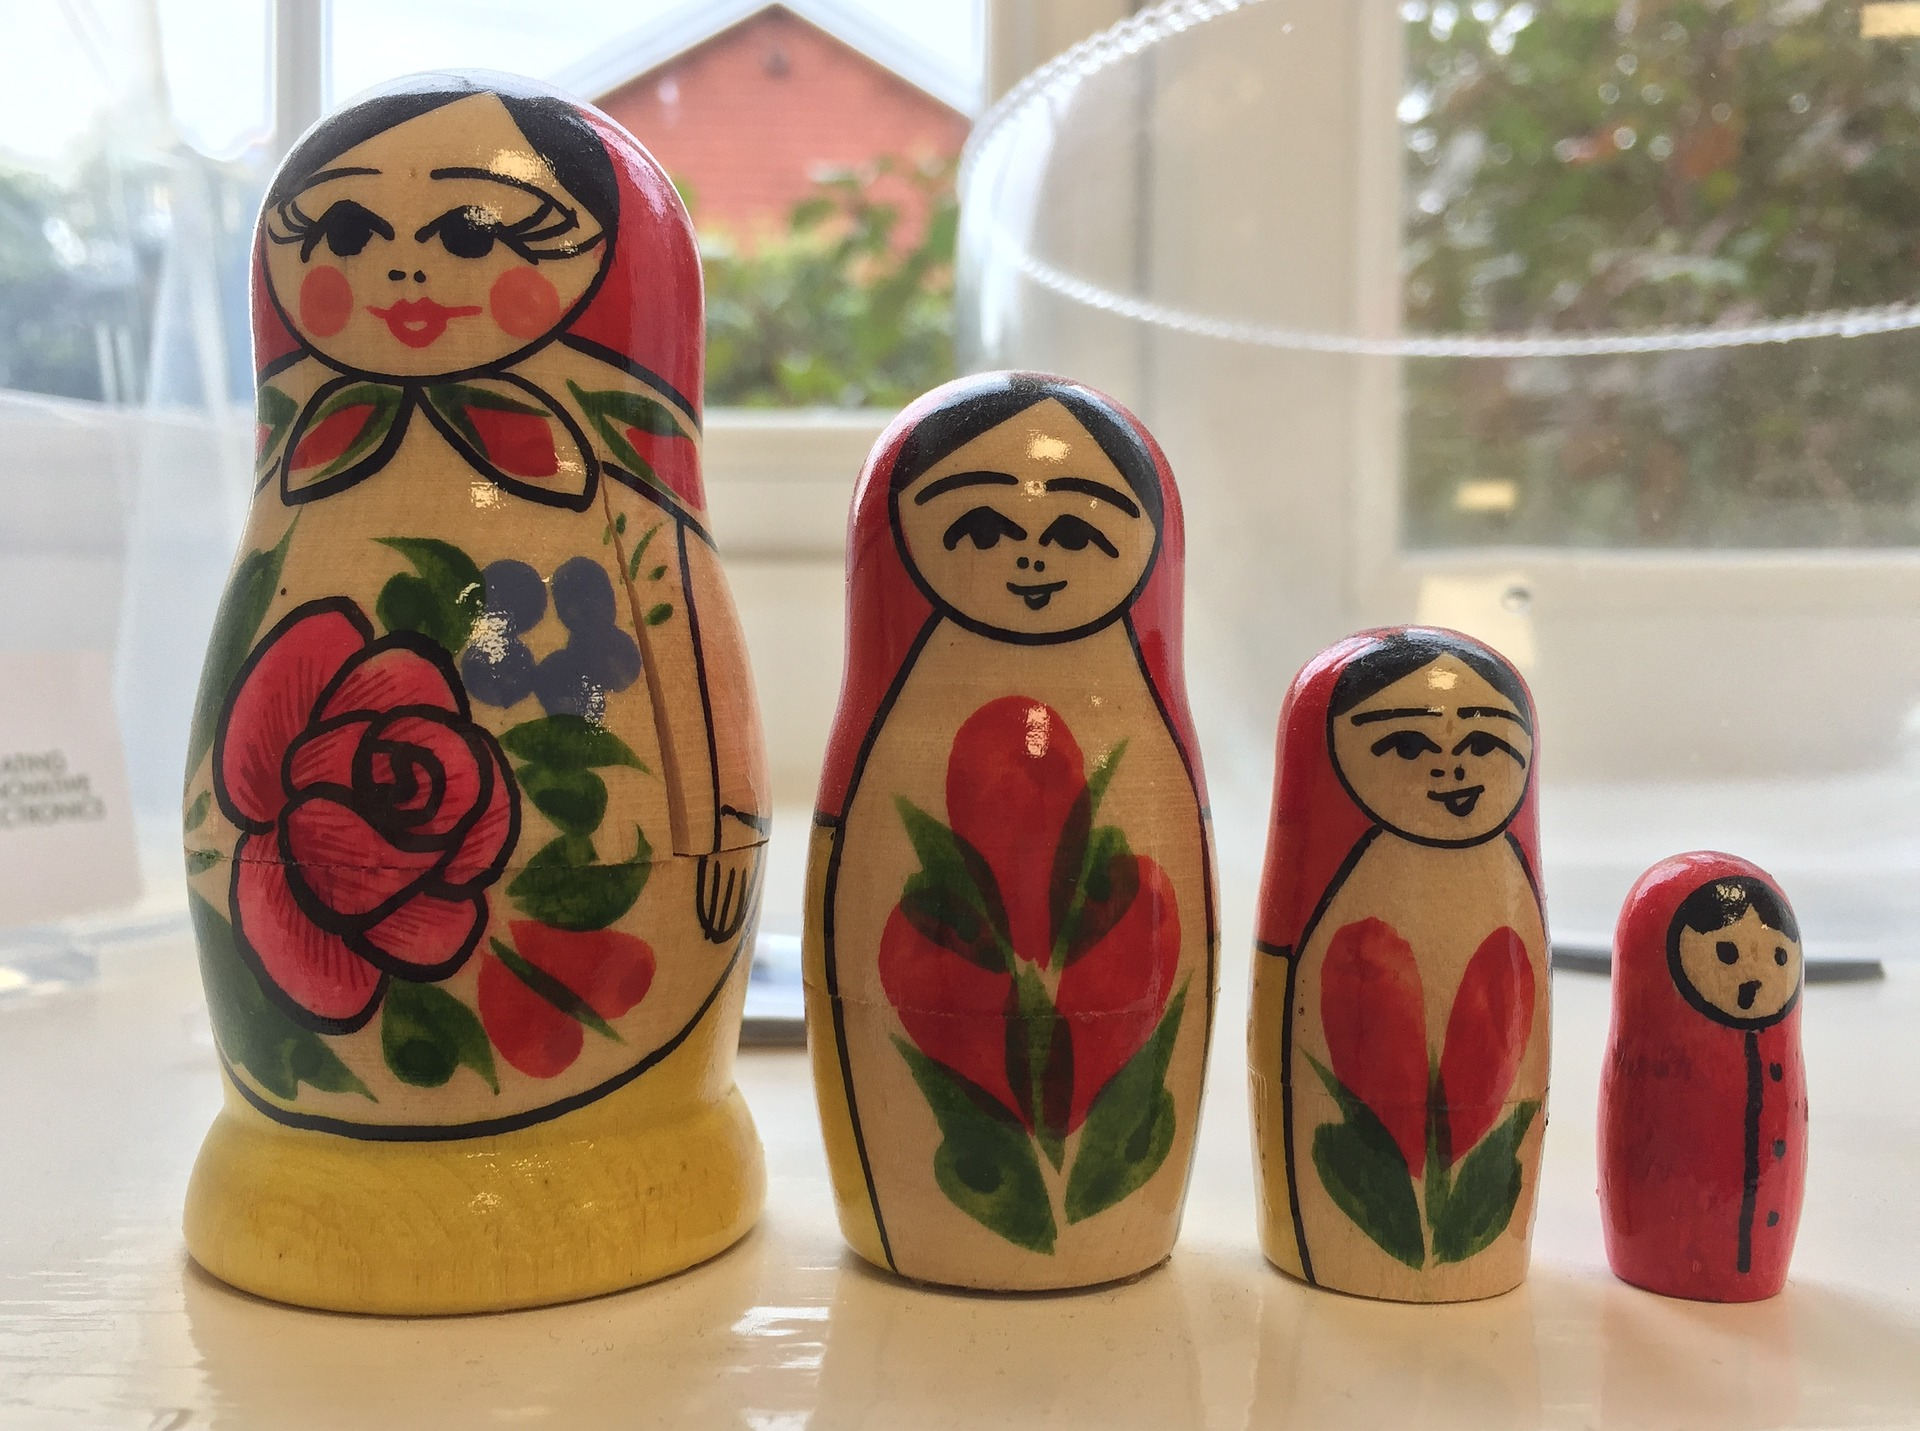 Takl chores are nested like these four Russian Nesting Dolls Sitting At A Table